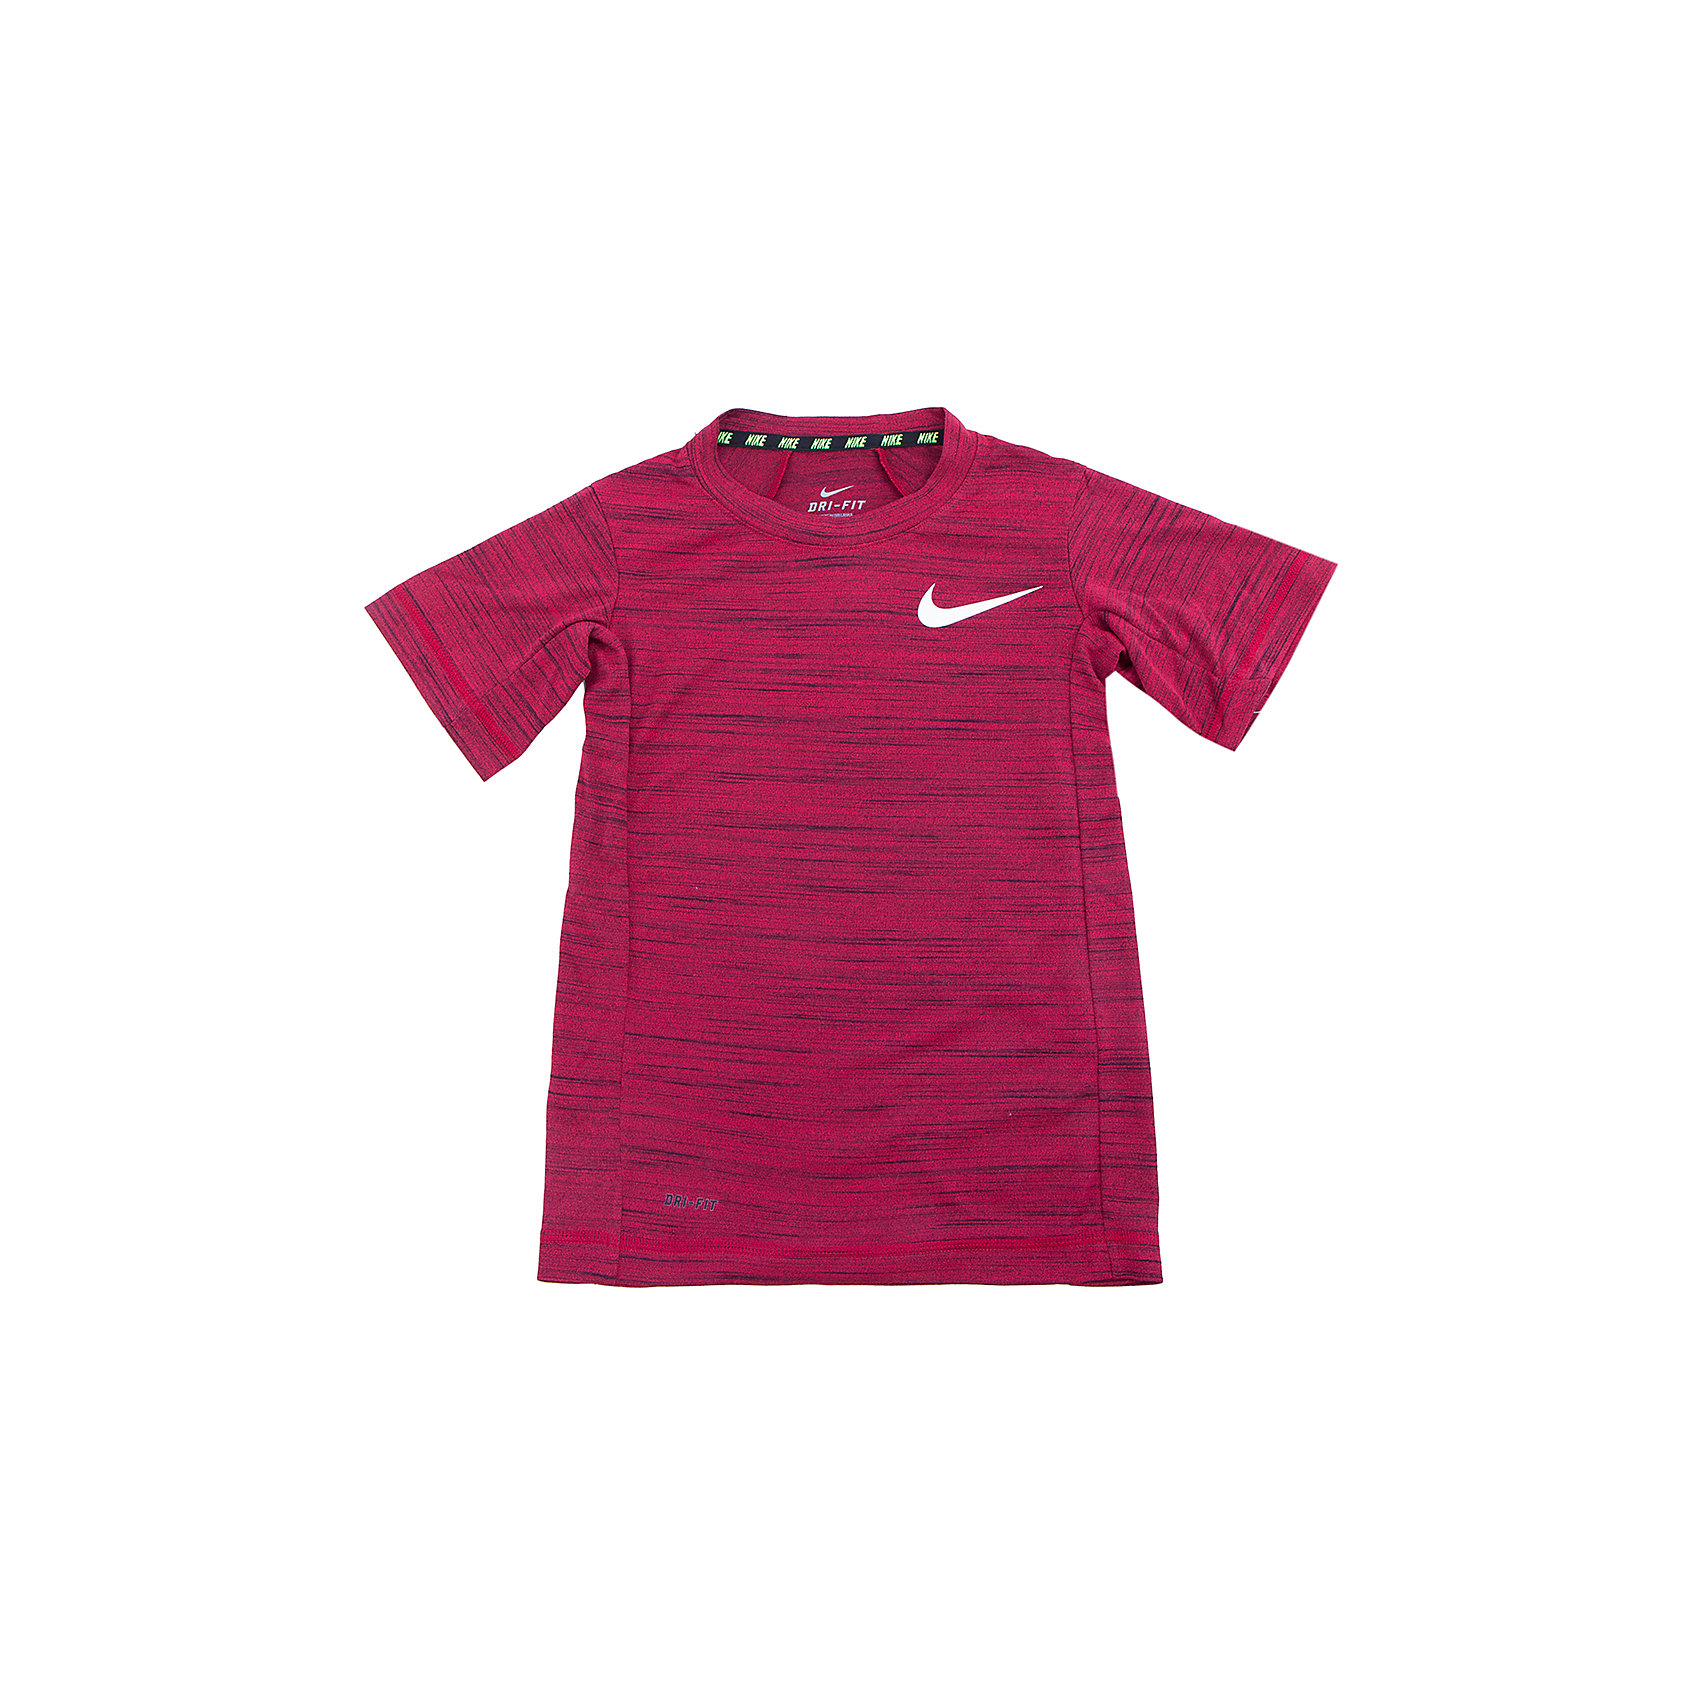 NIKE Футболка для мальчика NIKE DF COOL SS TOP YTH NIKE футболки nike футболка nike ss striped division ii jsy 725893 011